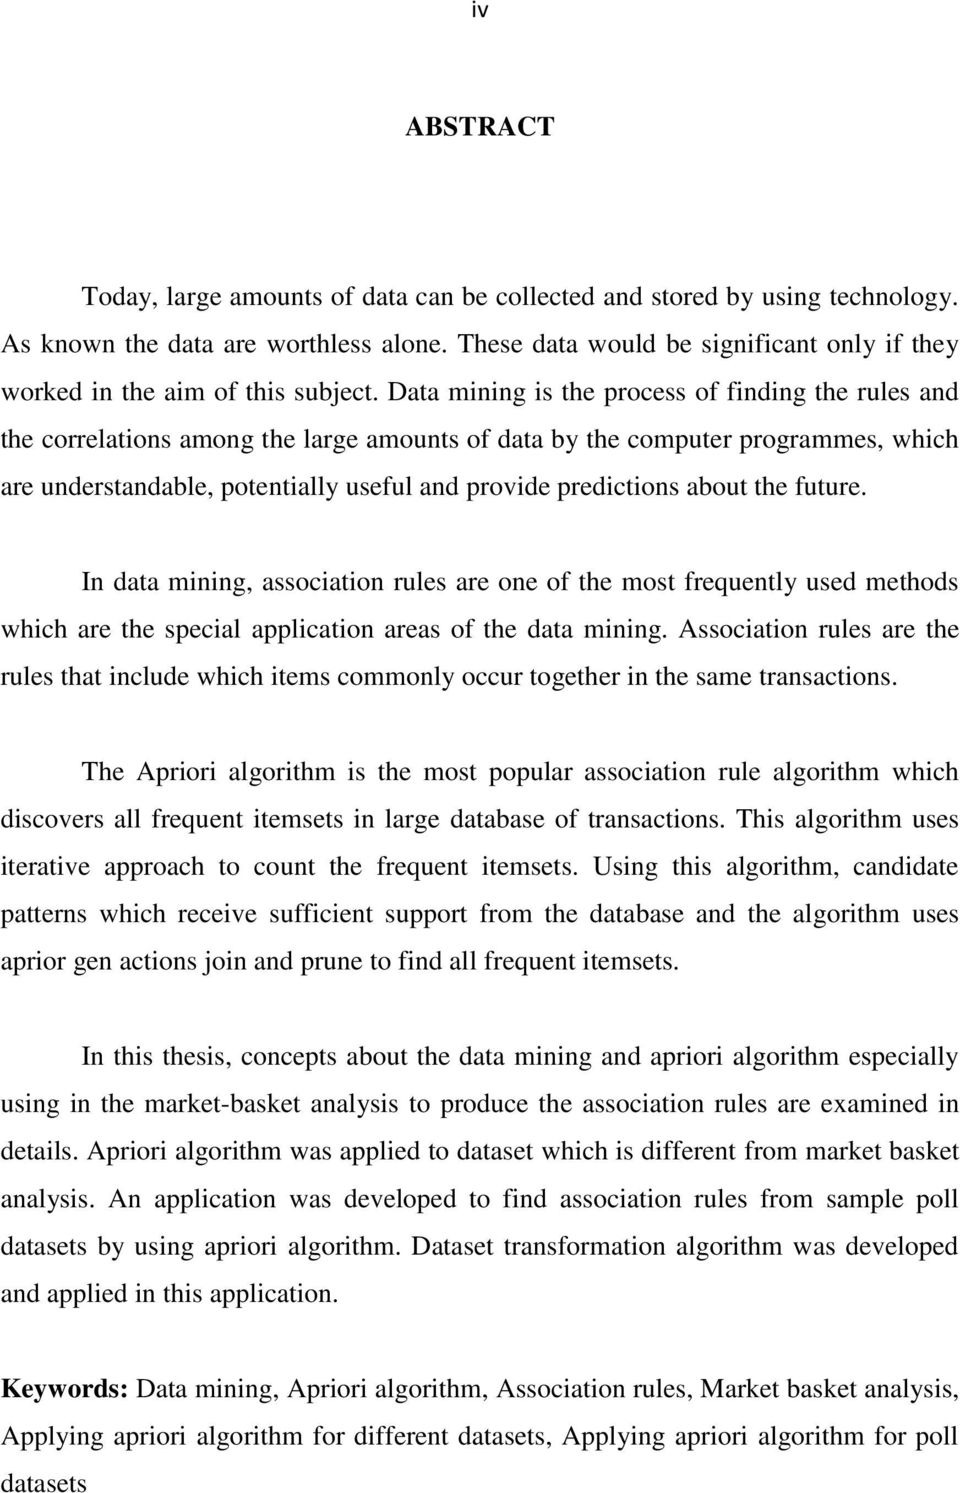 Data mining is the process of finding the rules and the correlations among the large amounts of data by the computer programmes, which are understandable, potentially useful and provide predictions